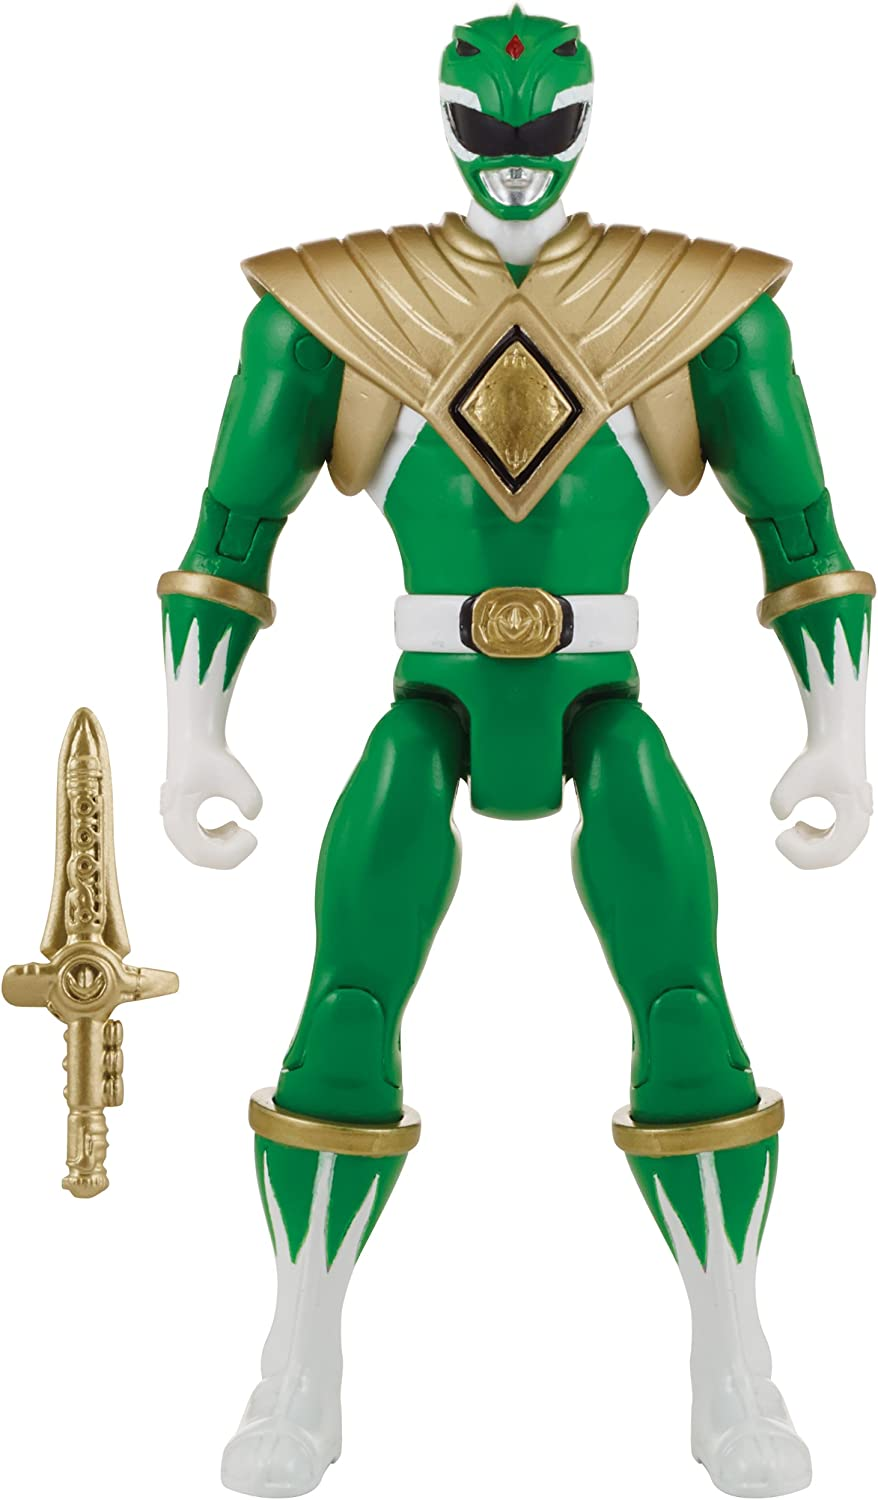 Power Rangers Super Megaforce  Mighty Morphin Green Ranger Action Hero, 5Inch by Power Rangers